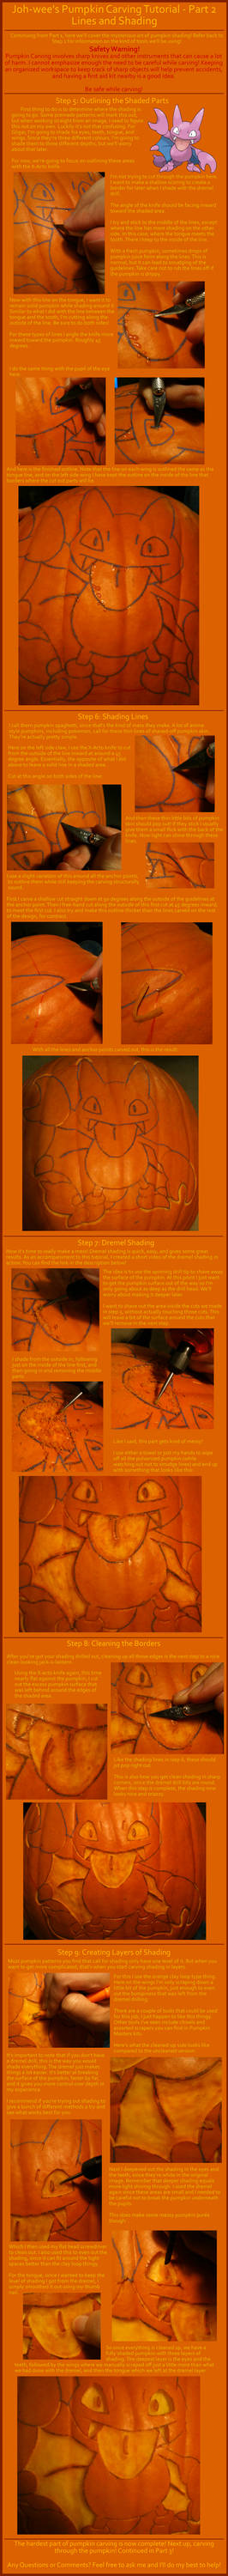 Pumpkin Carving Tutorial - Part 2